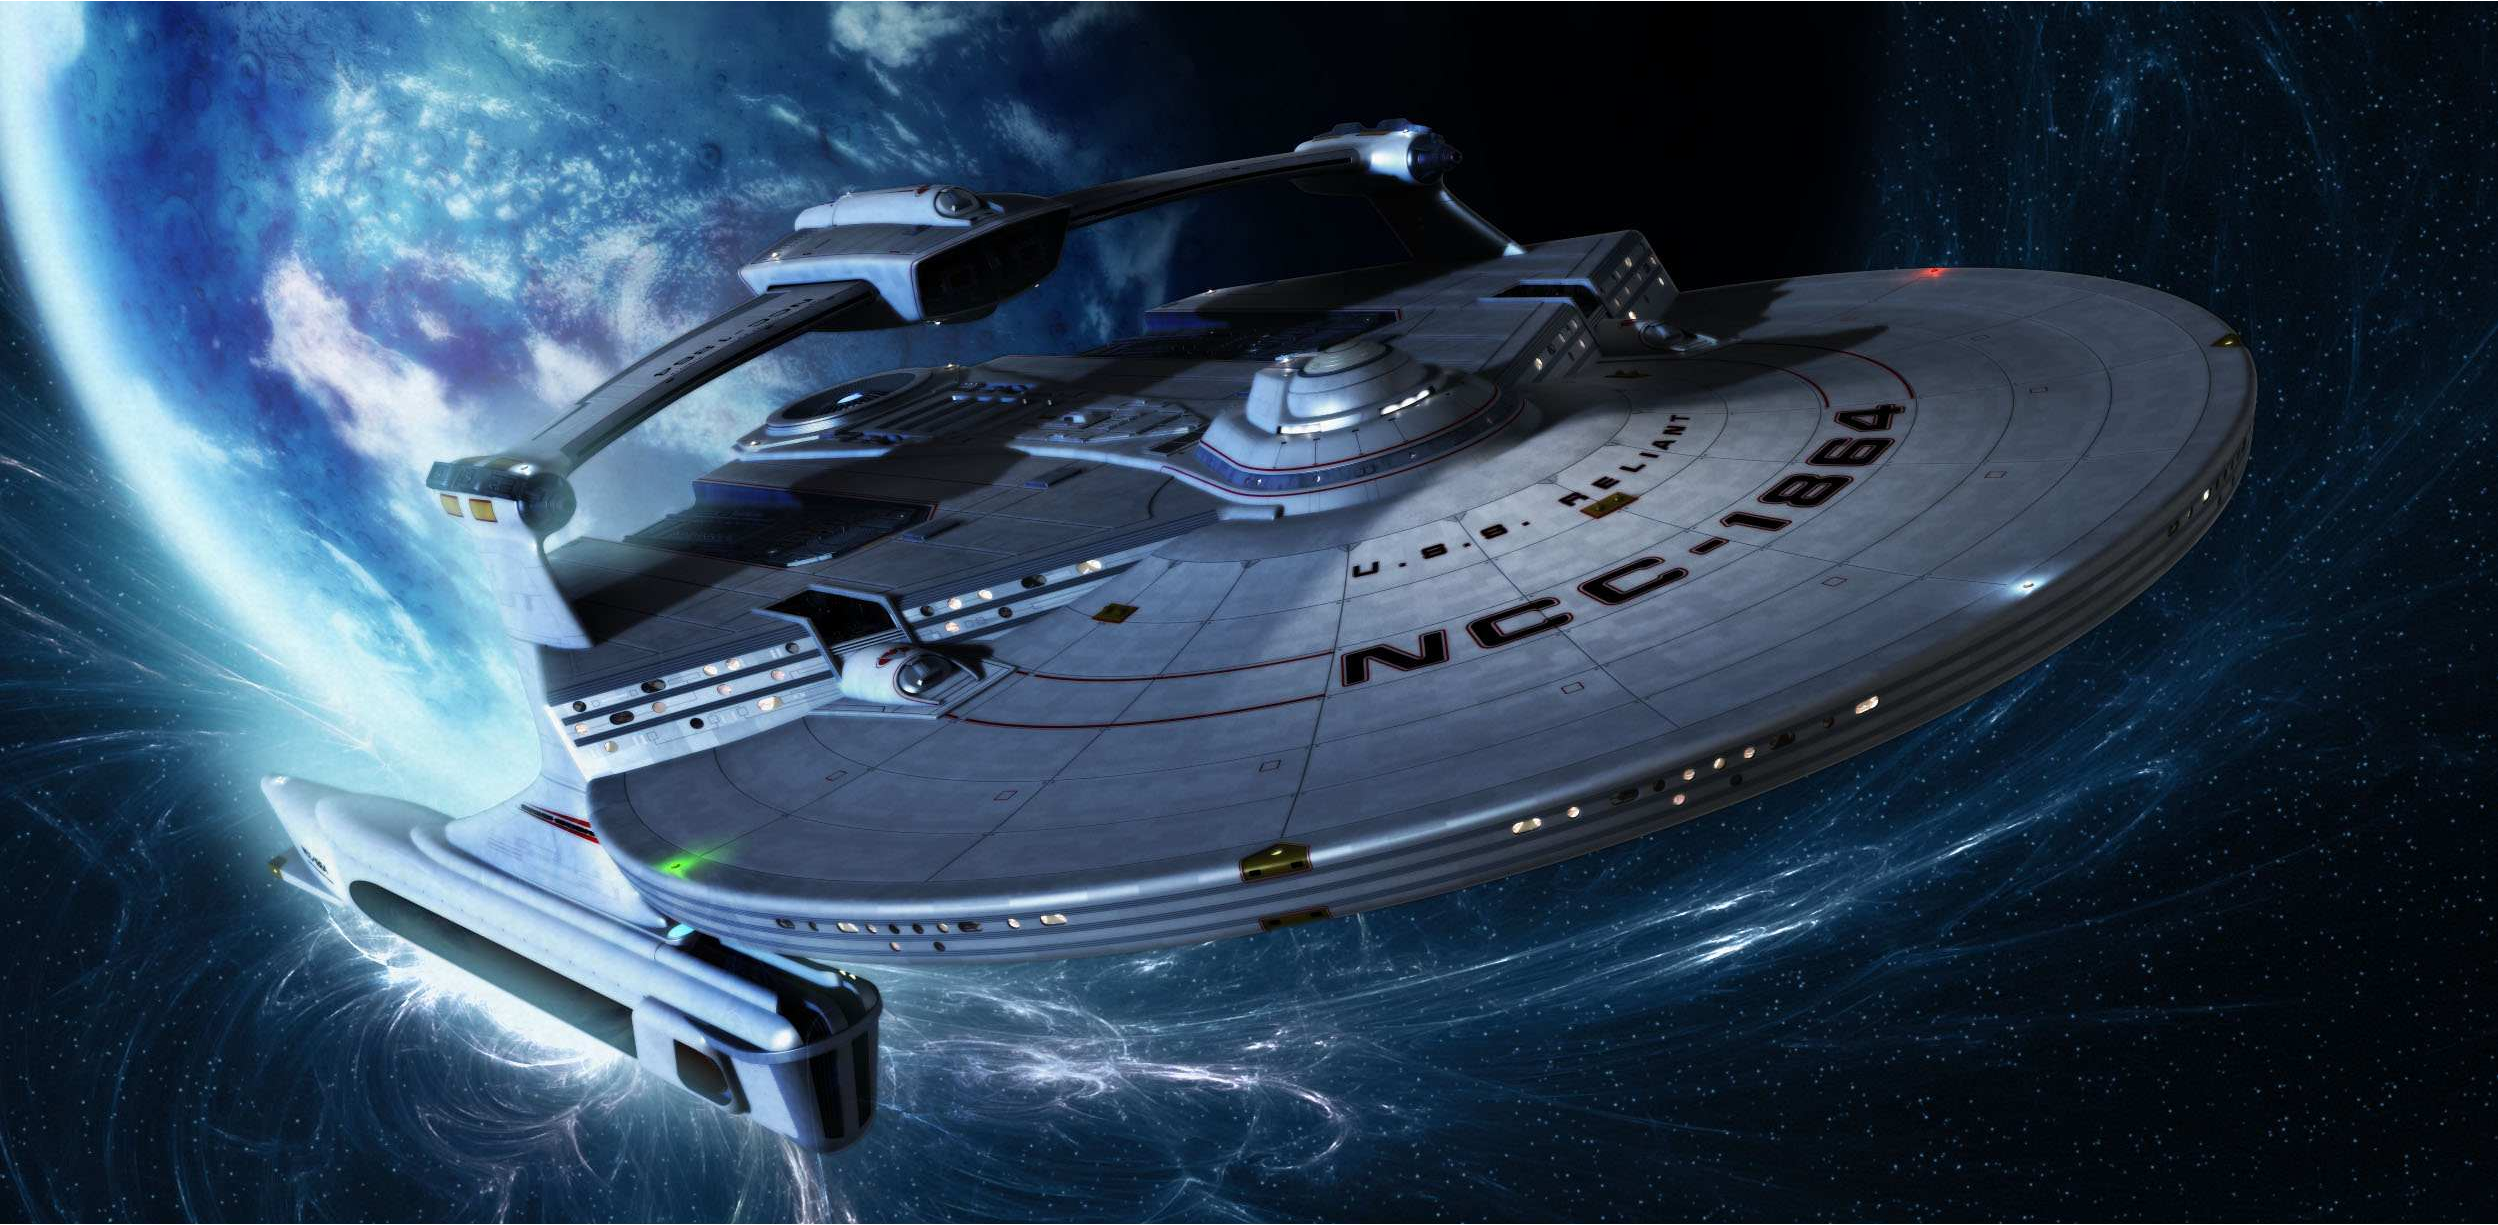 Populaire 1315 Star Trek HD Wallpapers | Background Images - Wallpaper Abyss ZP61